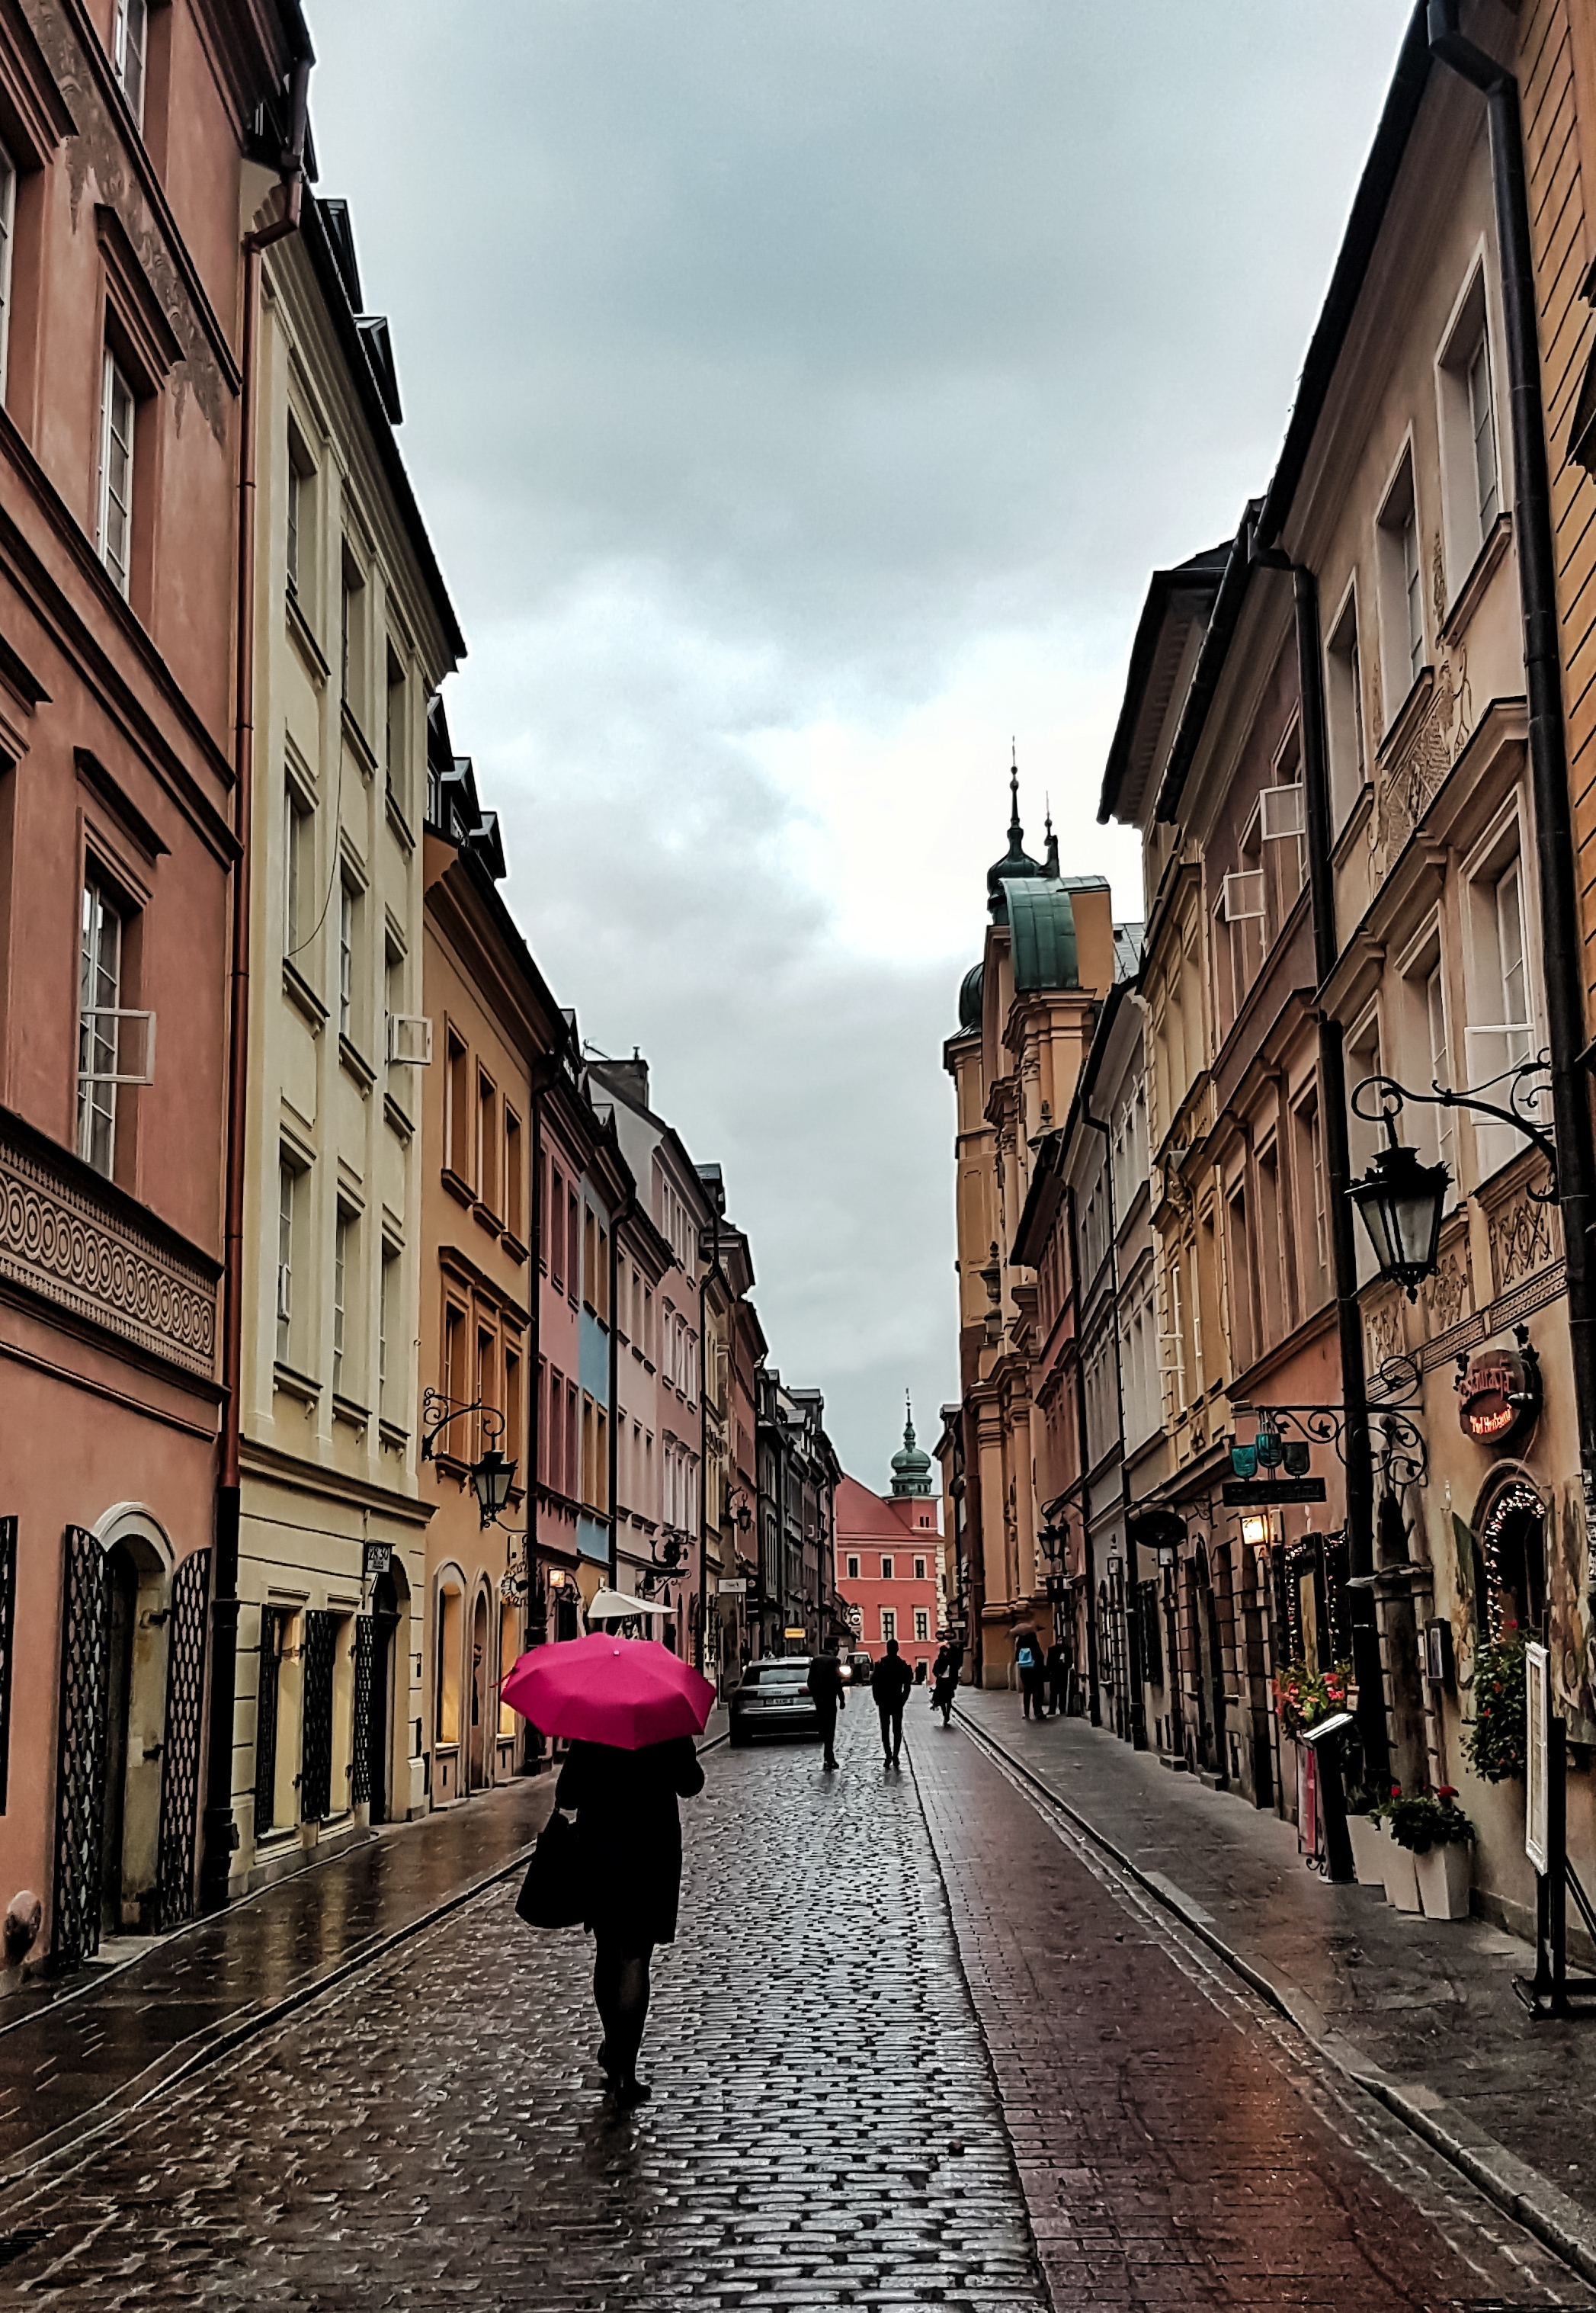 48 hours in Warsaw Poland